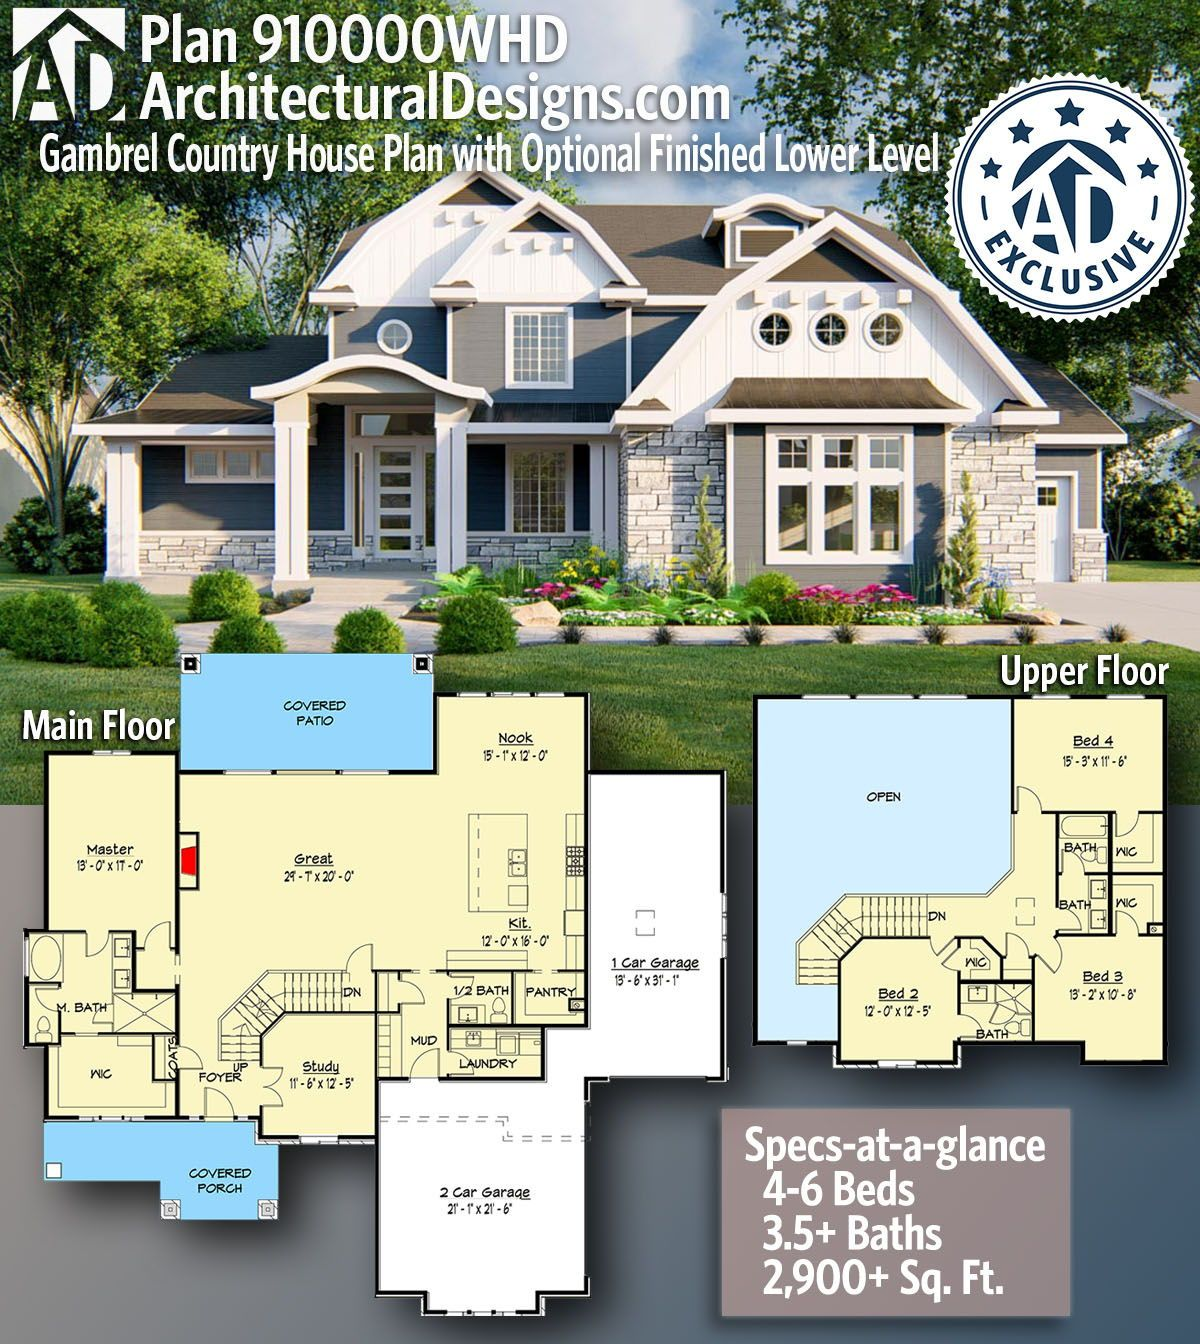 Plan 910000whd Gambrel Country House Plan With Optional Finished Lower Level In 2021 House Plans Country House Plan Exclusive House Plan